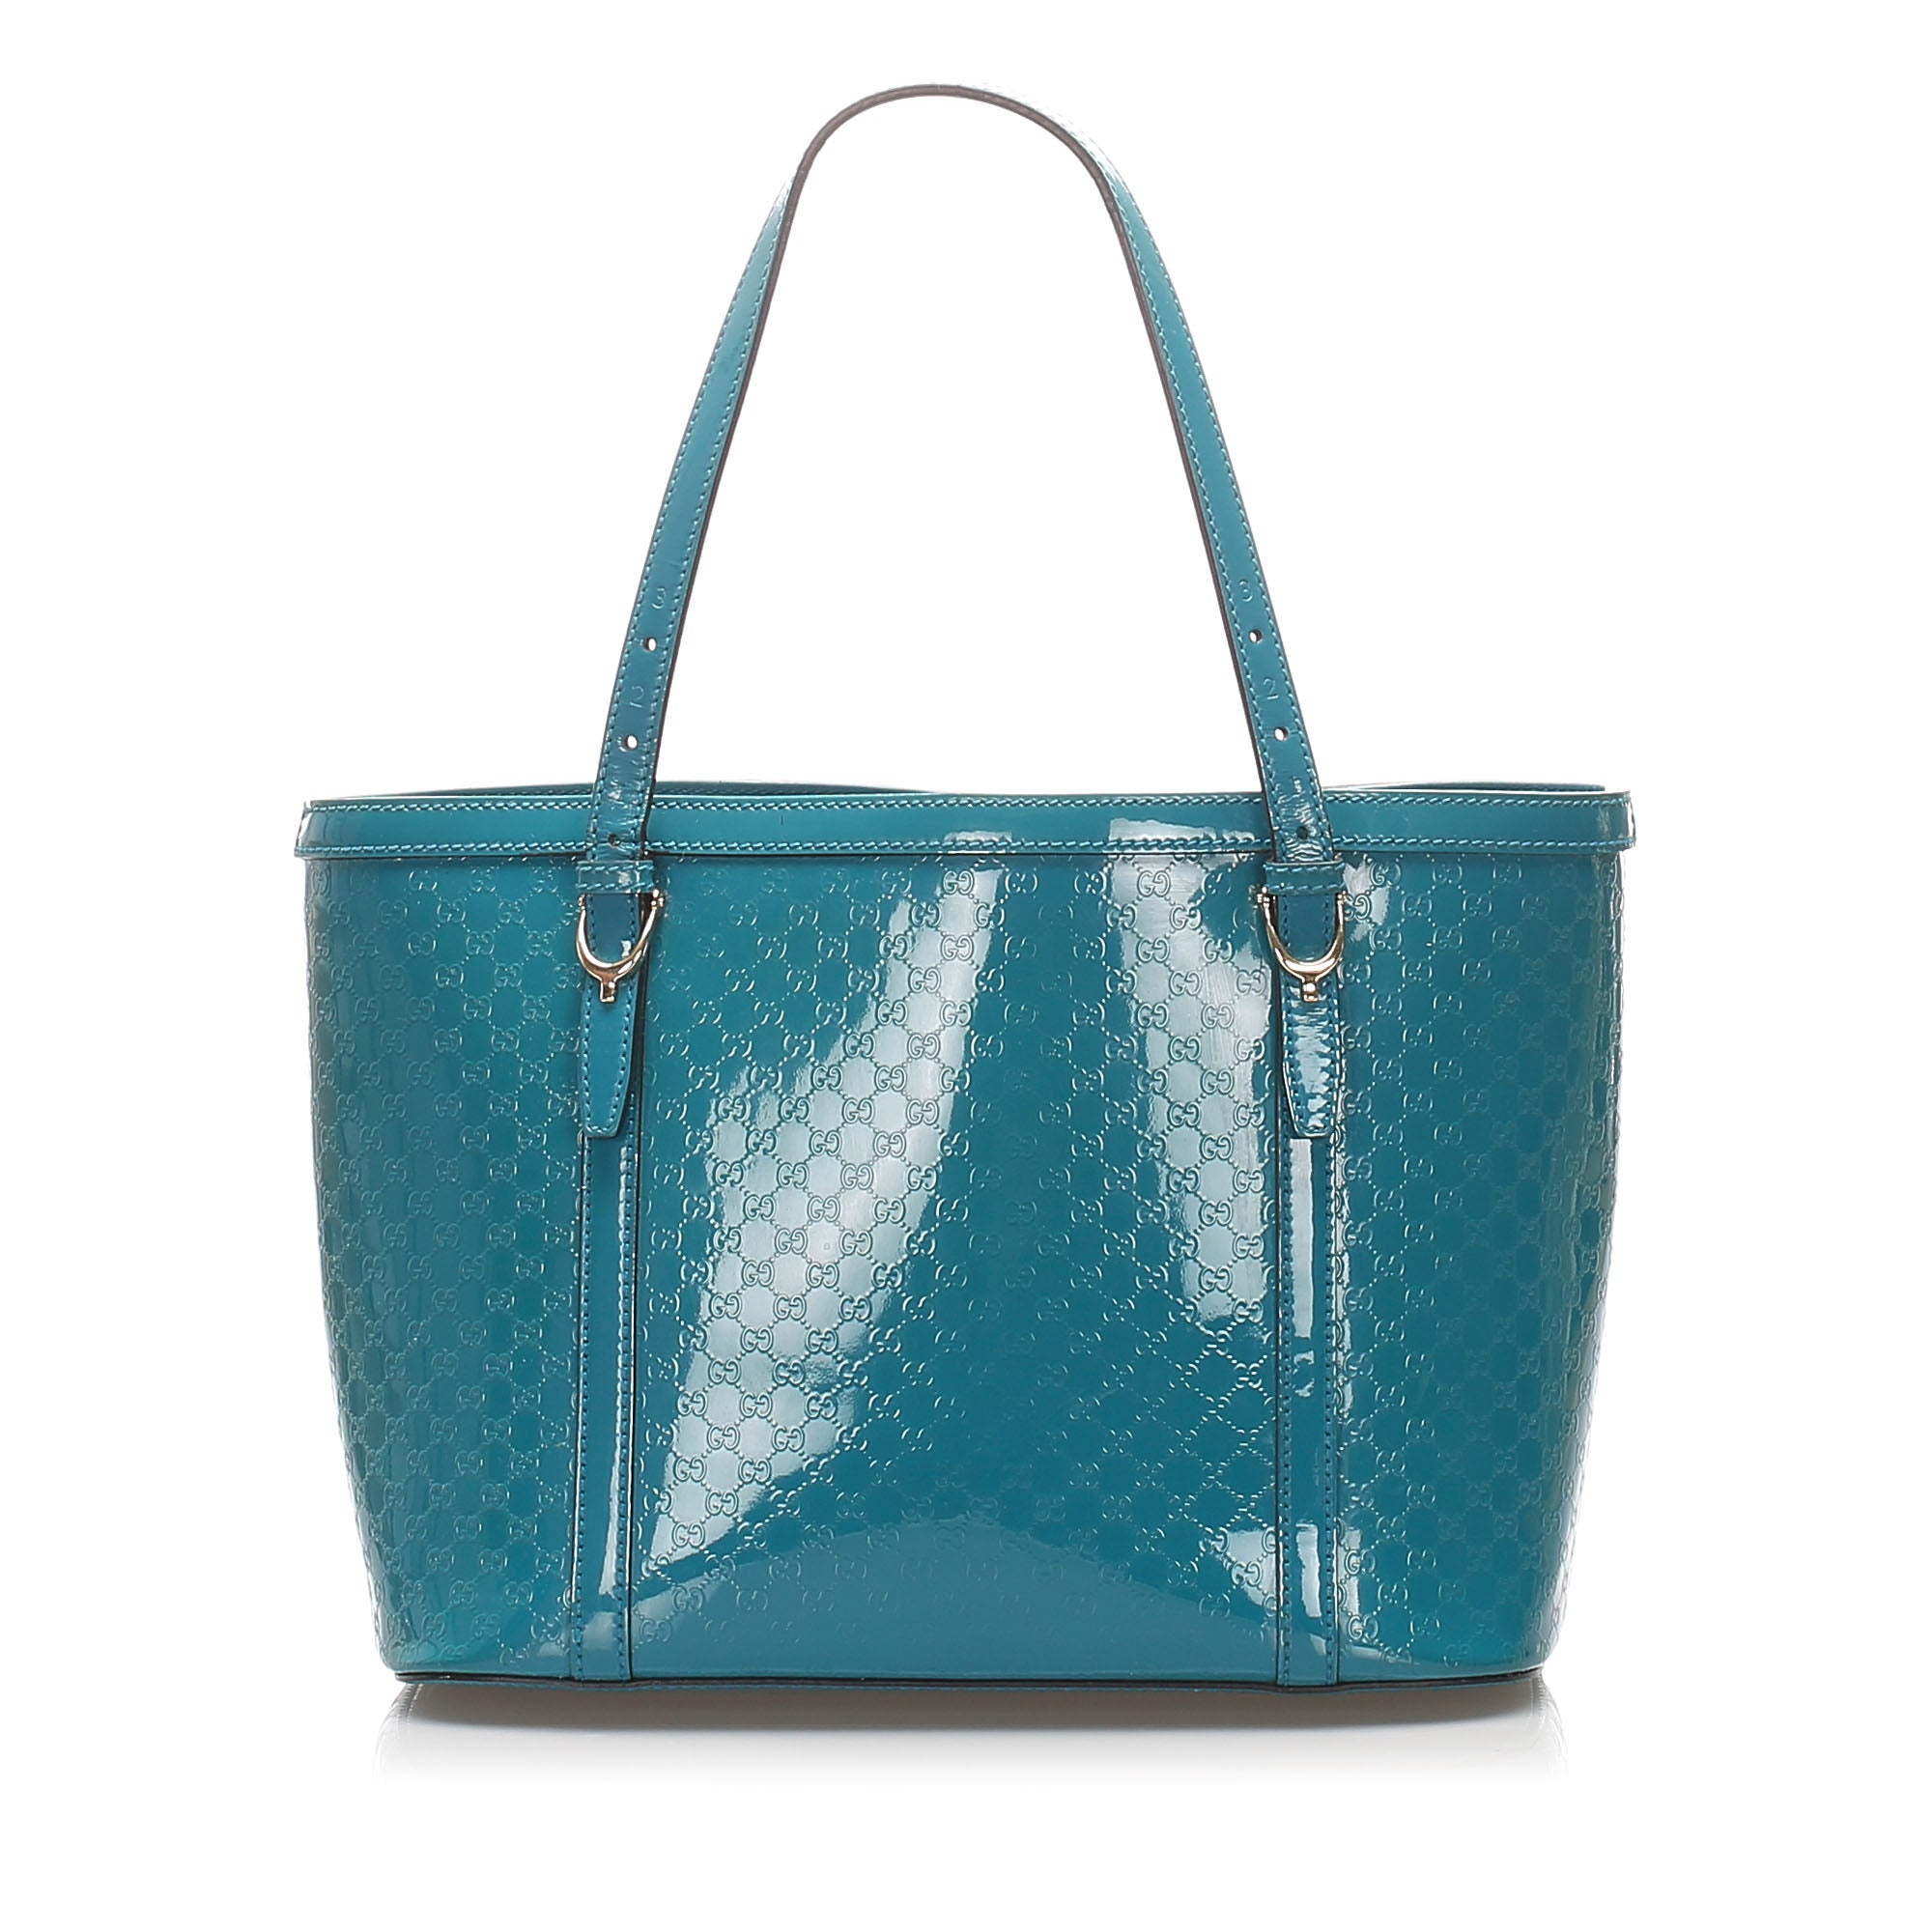 Gucci Blue Microguccissima Patent Leather Nice Tote Bag